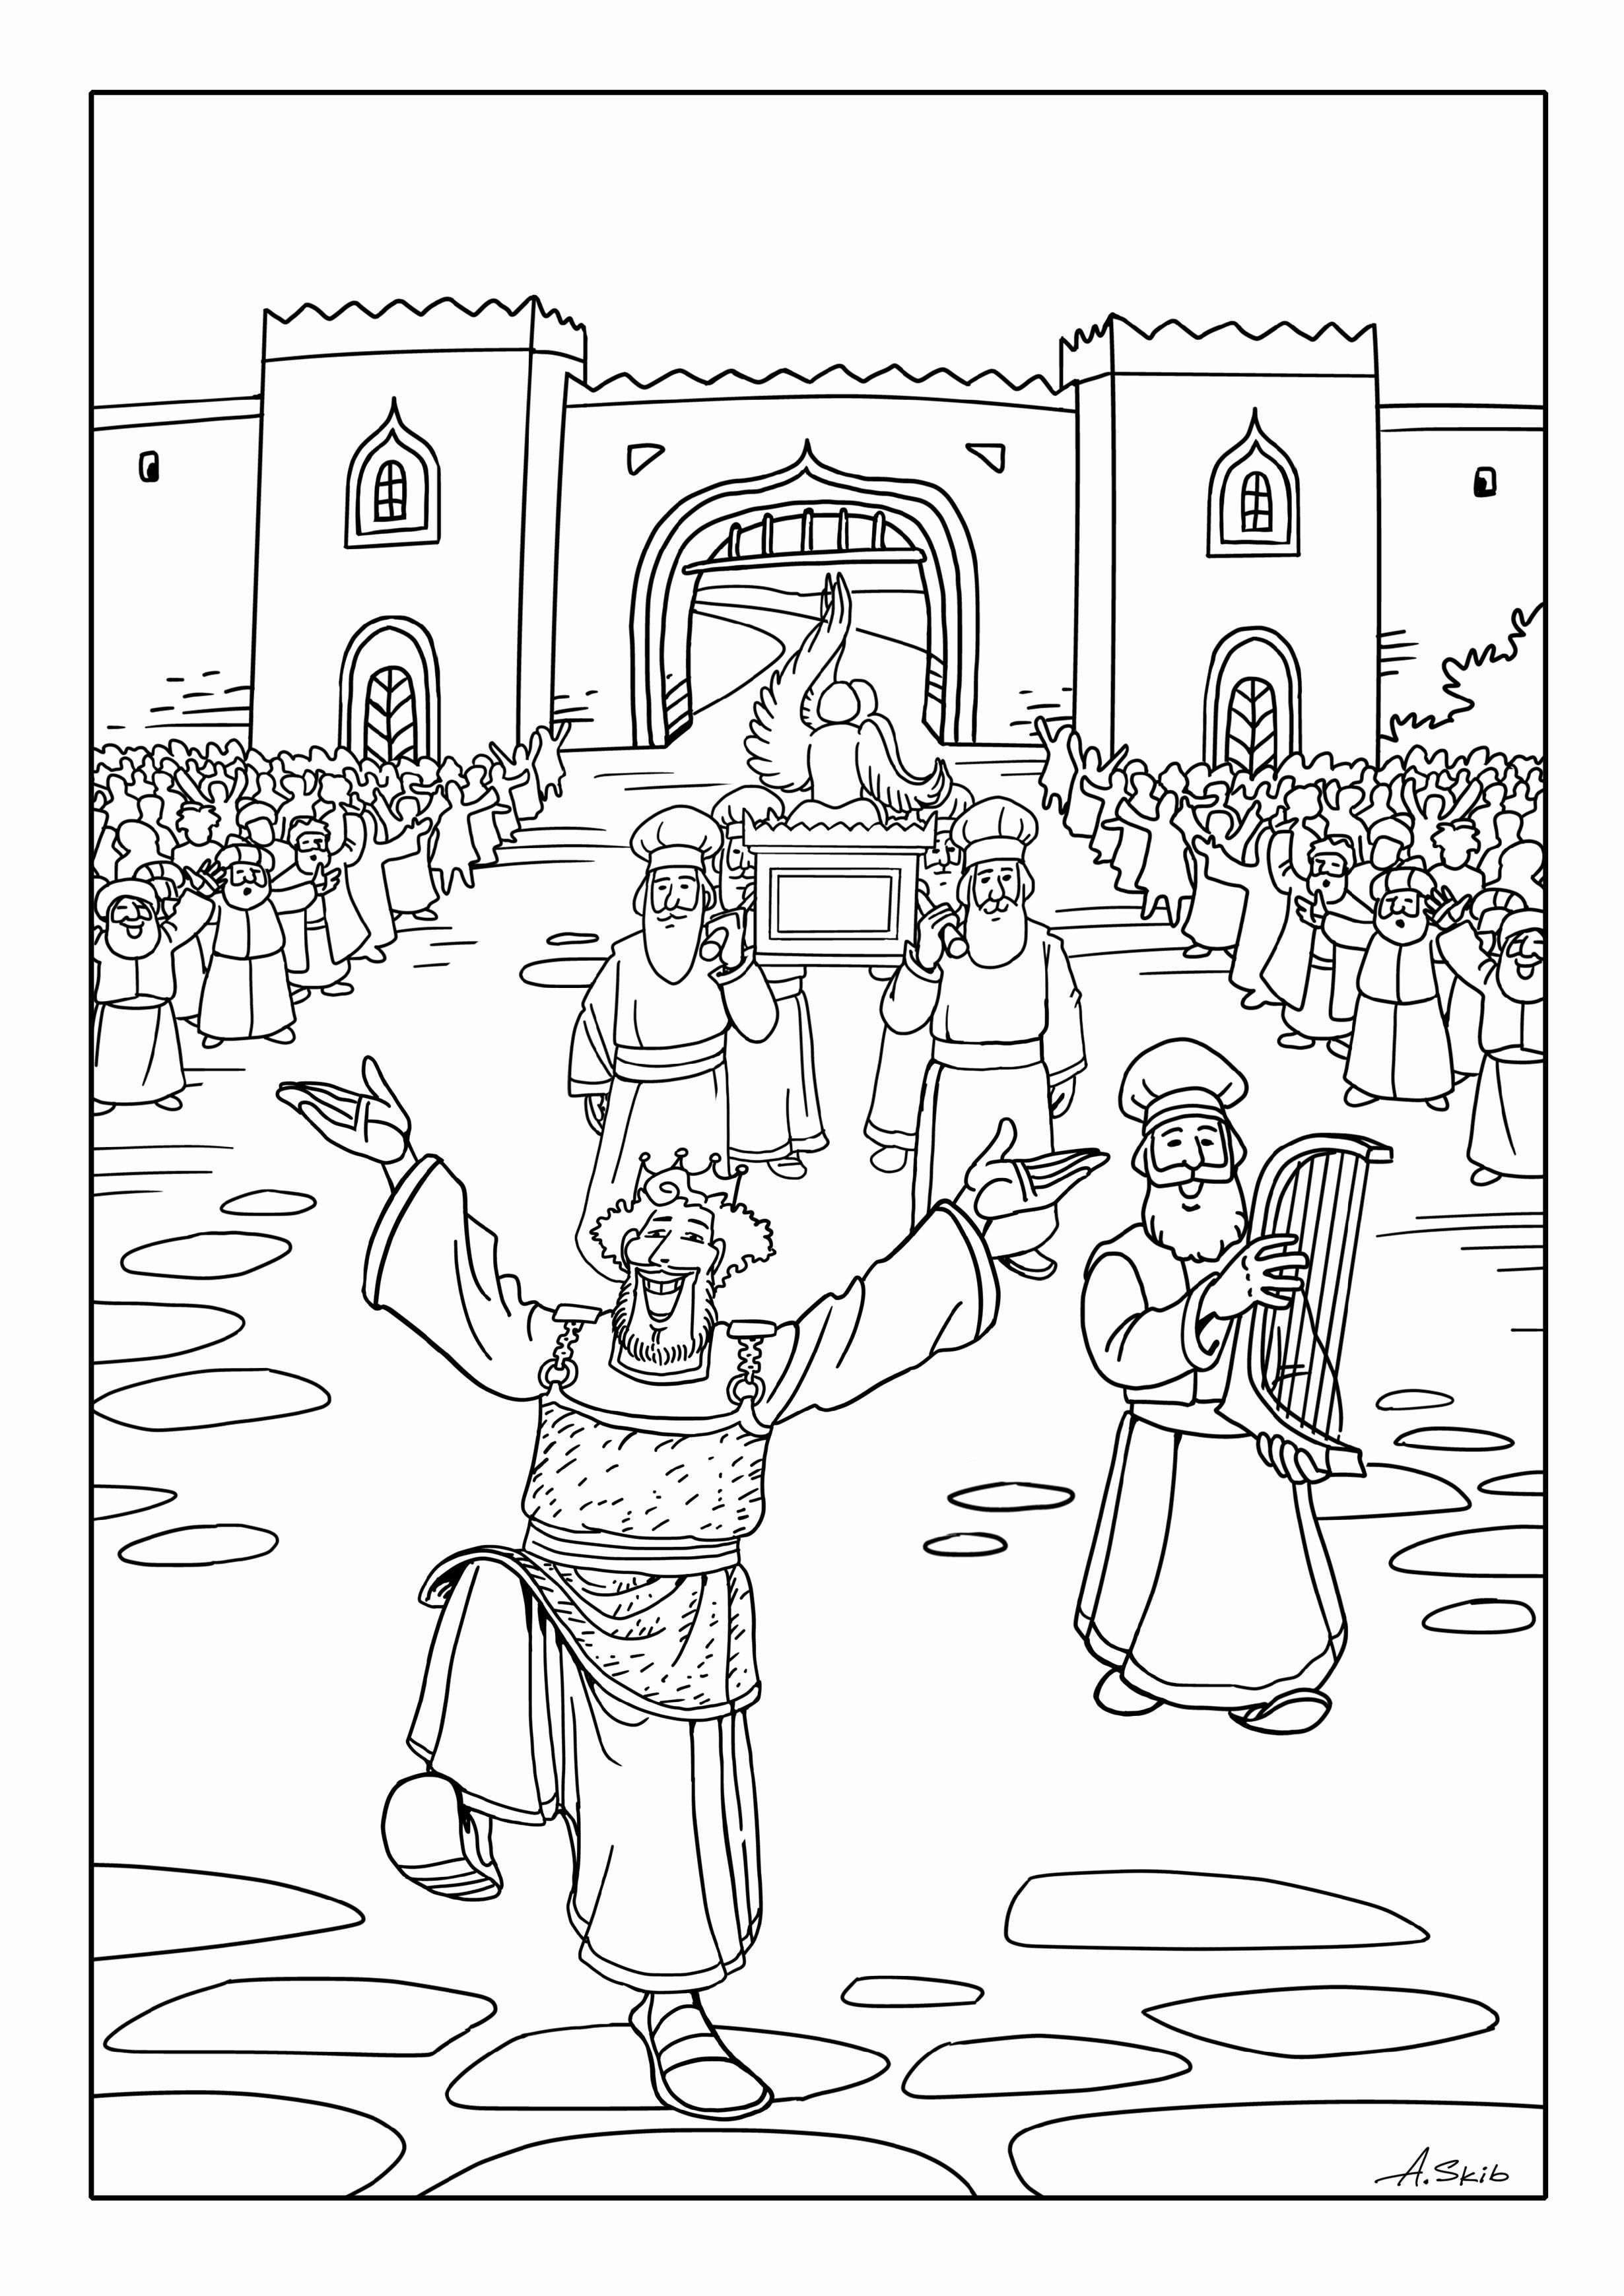 Ark Of the Covenant Coloring Page Luxury David Brings the